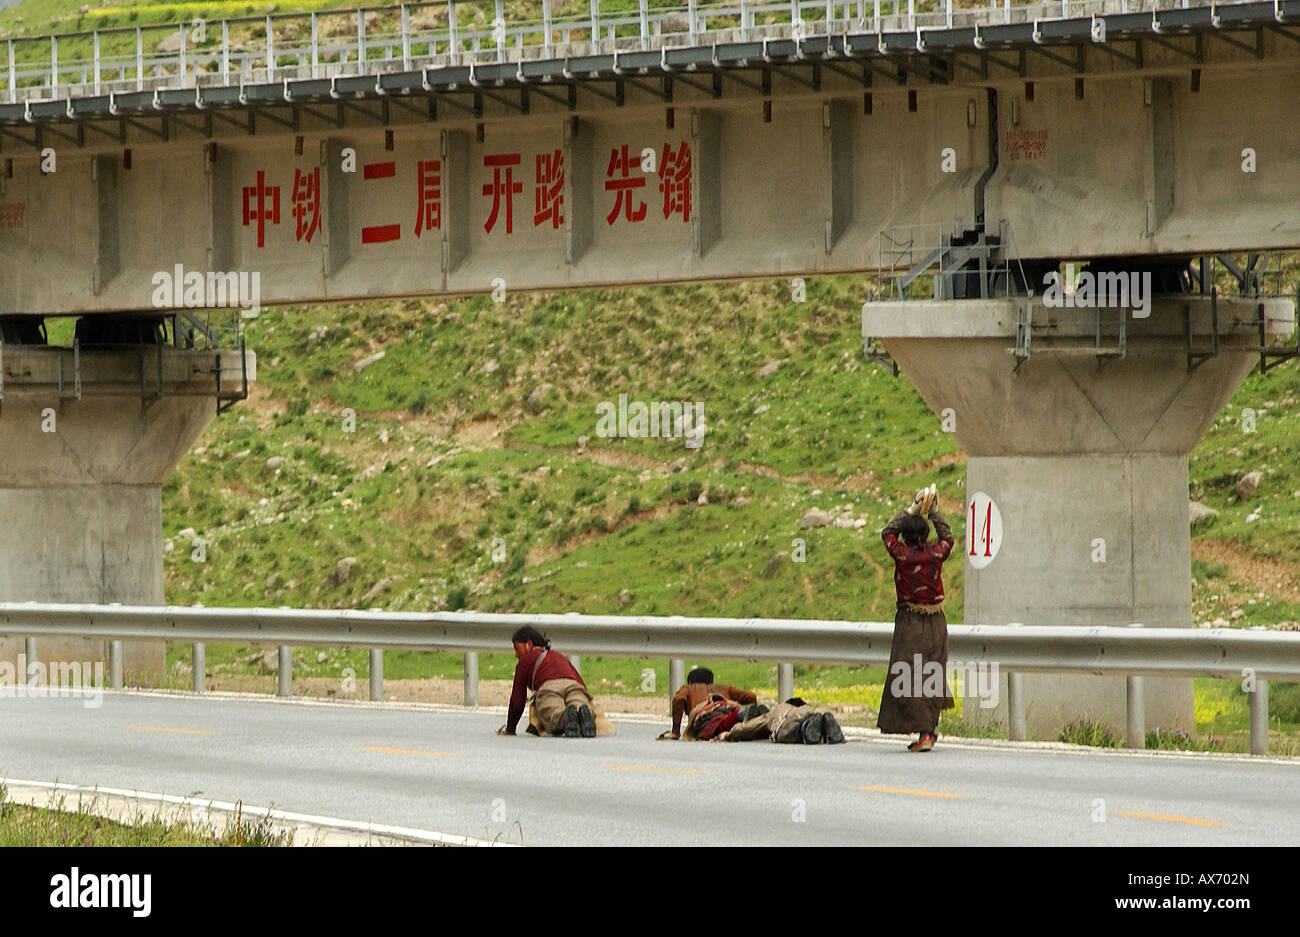 Nomad pilgrims prostrate before a railway bridge en route to Lhasa from Nagchu in northern Tibet. Tibetan train - Stock Image